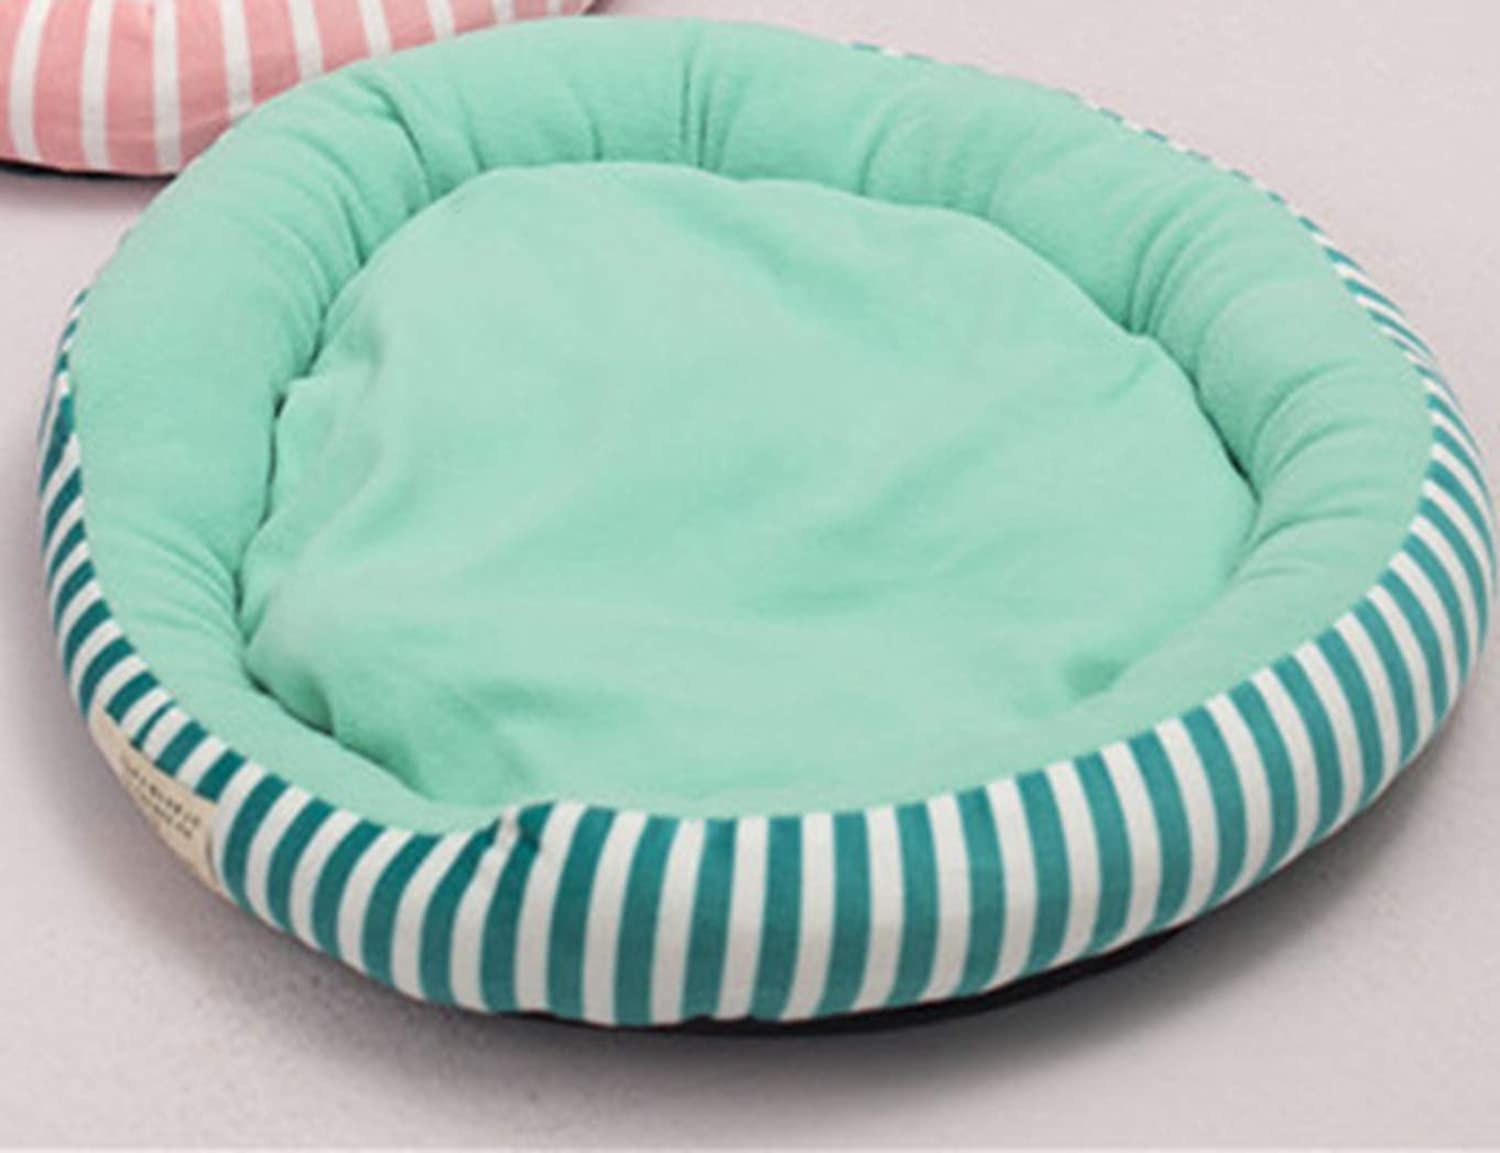 SENERY Products Pets Beds,Large Beds House Mat Blanket Cat Dog